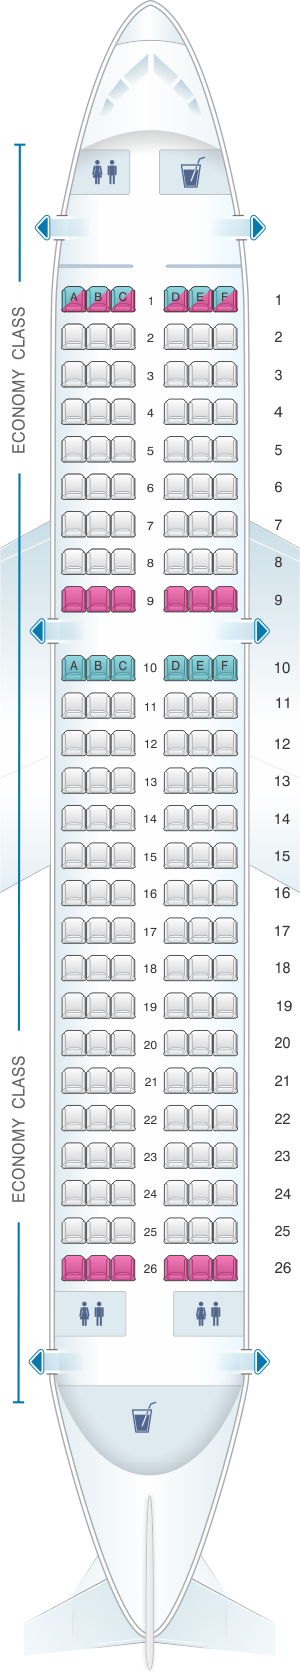 Seat map for Easyjet Airbus A319